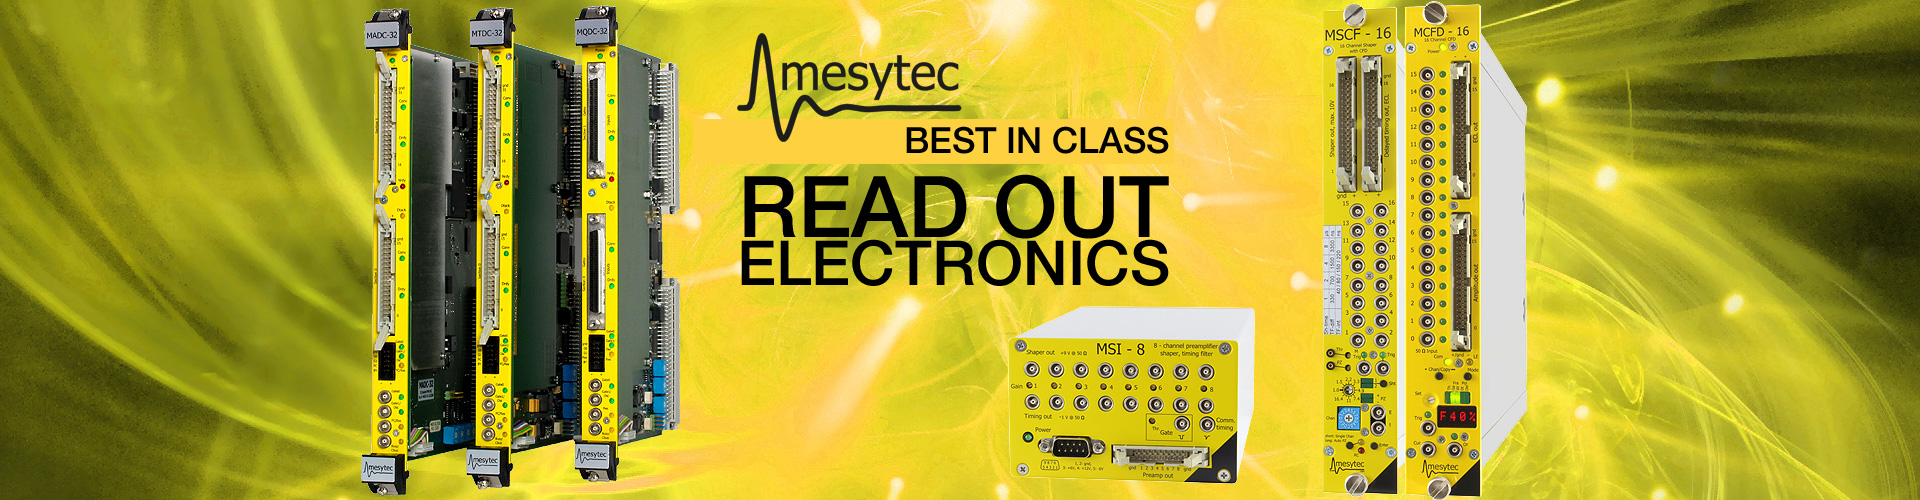 MESYTEC READ OUT ELECTRONICS